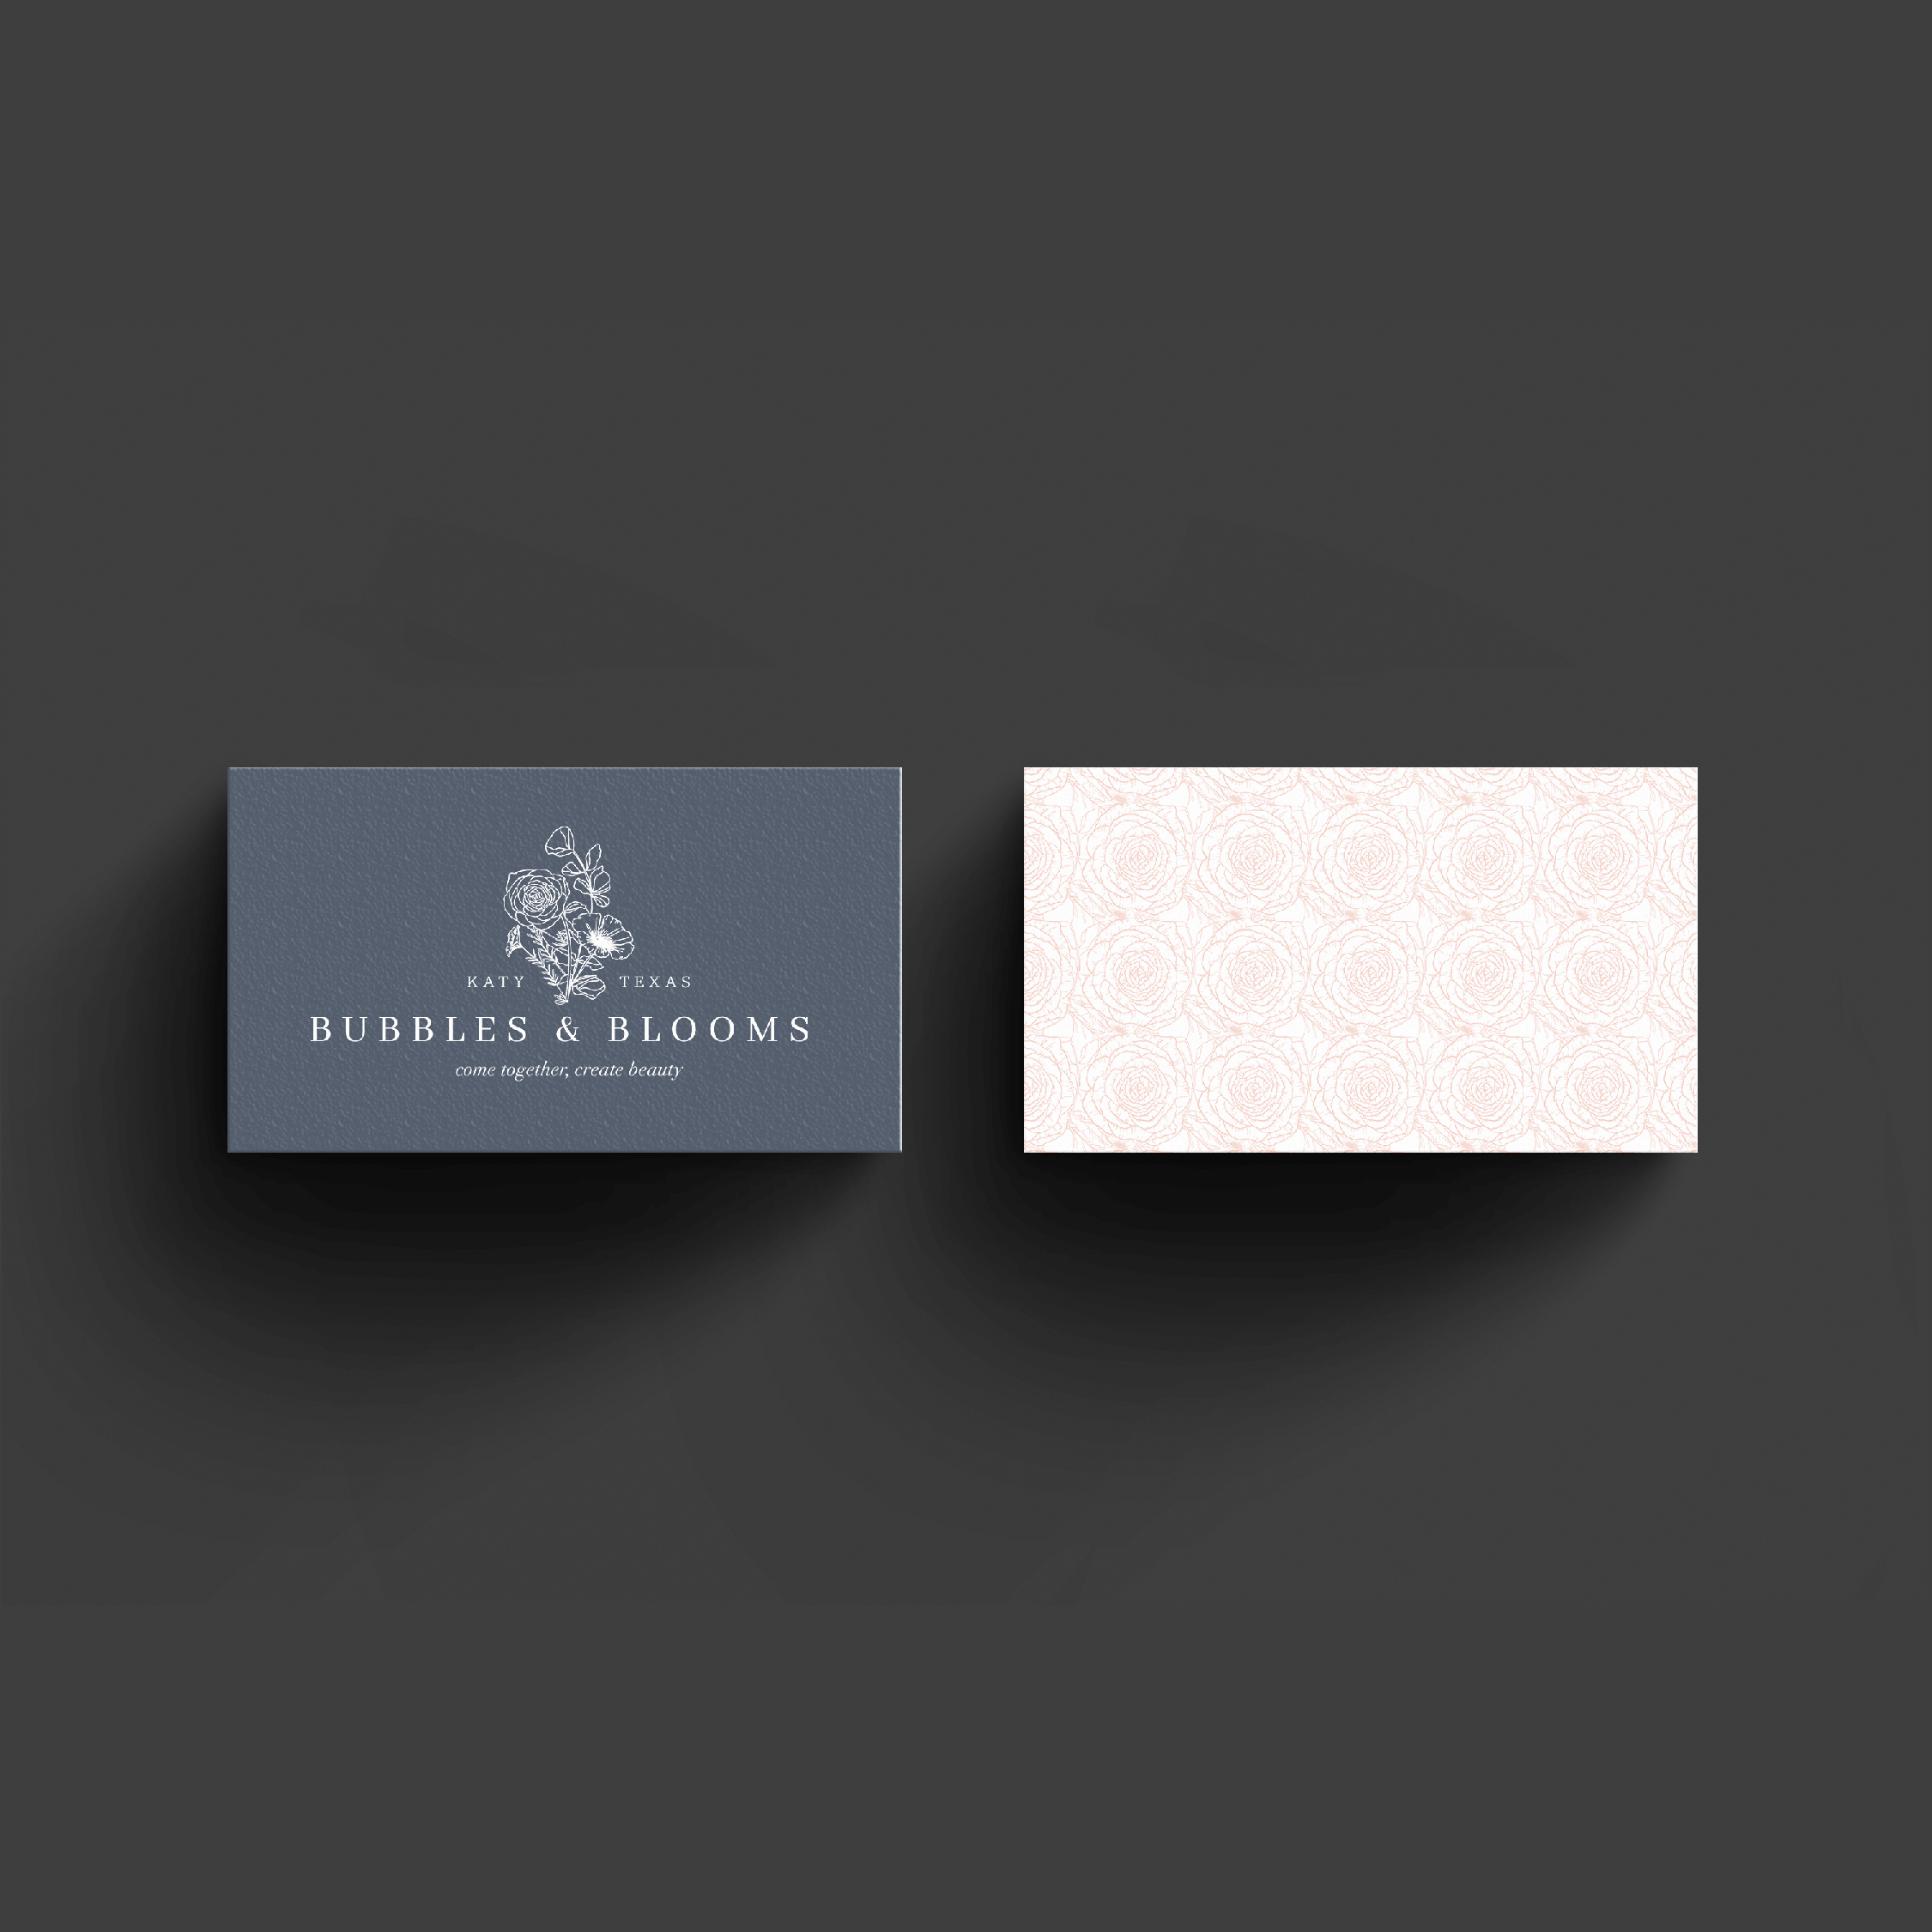 Bubbles and Blooms Katy Texas Florist business card and logo design by Kindly by Kelsea